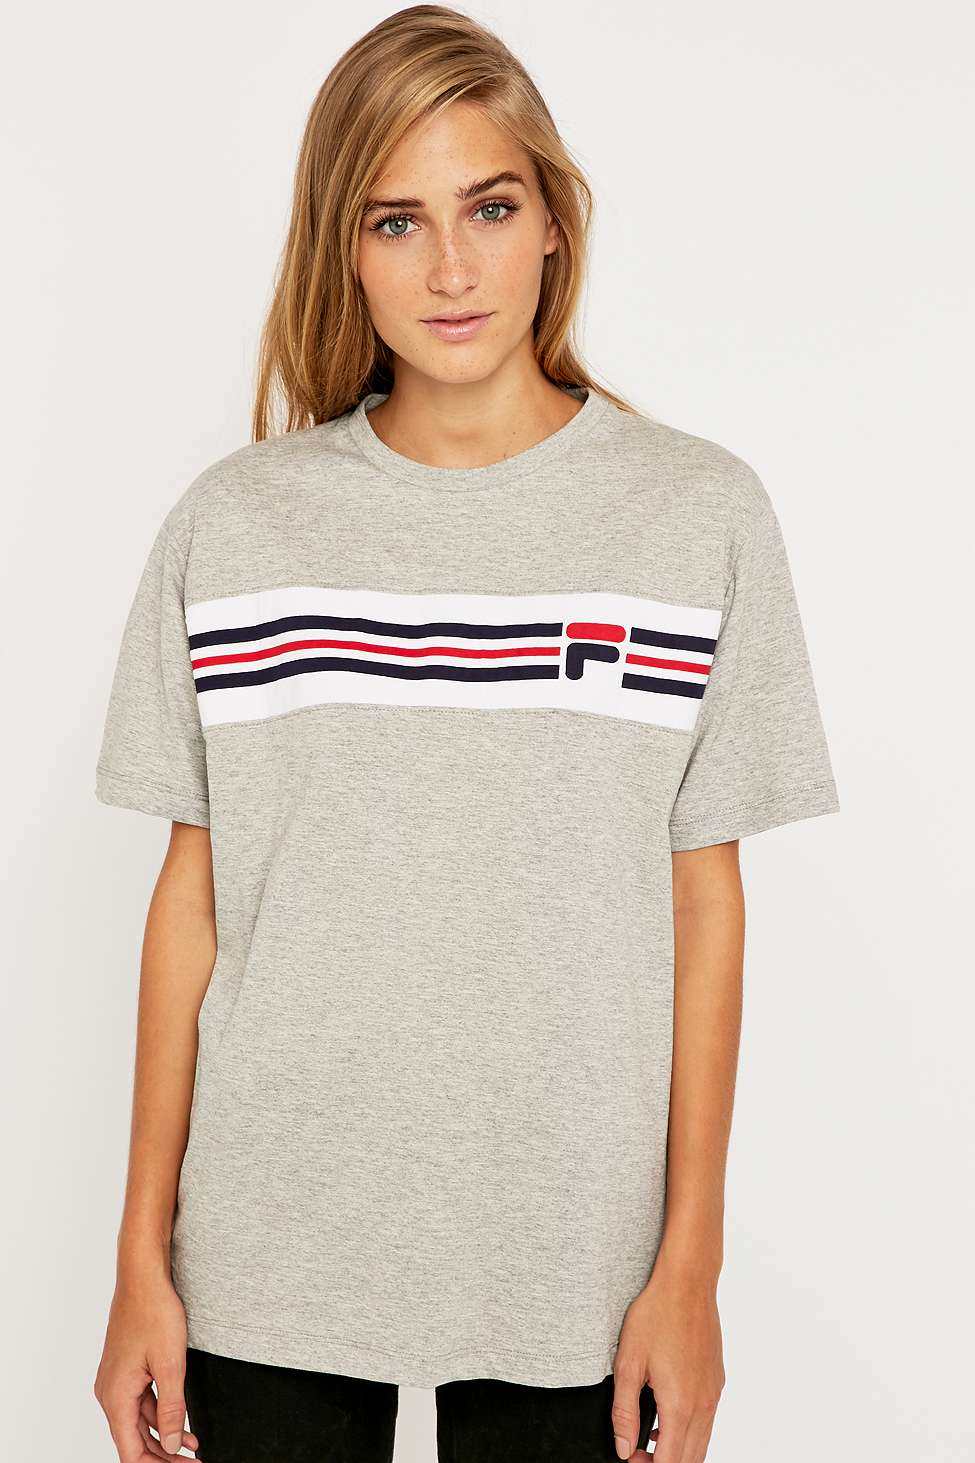 fila cameron stripe t shirt in gray lyst. Black Bedroom Furniture Sets. Home Design Ideas